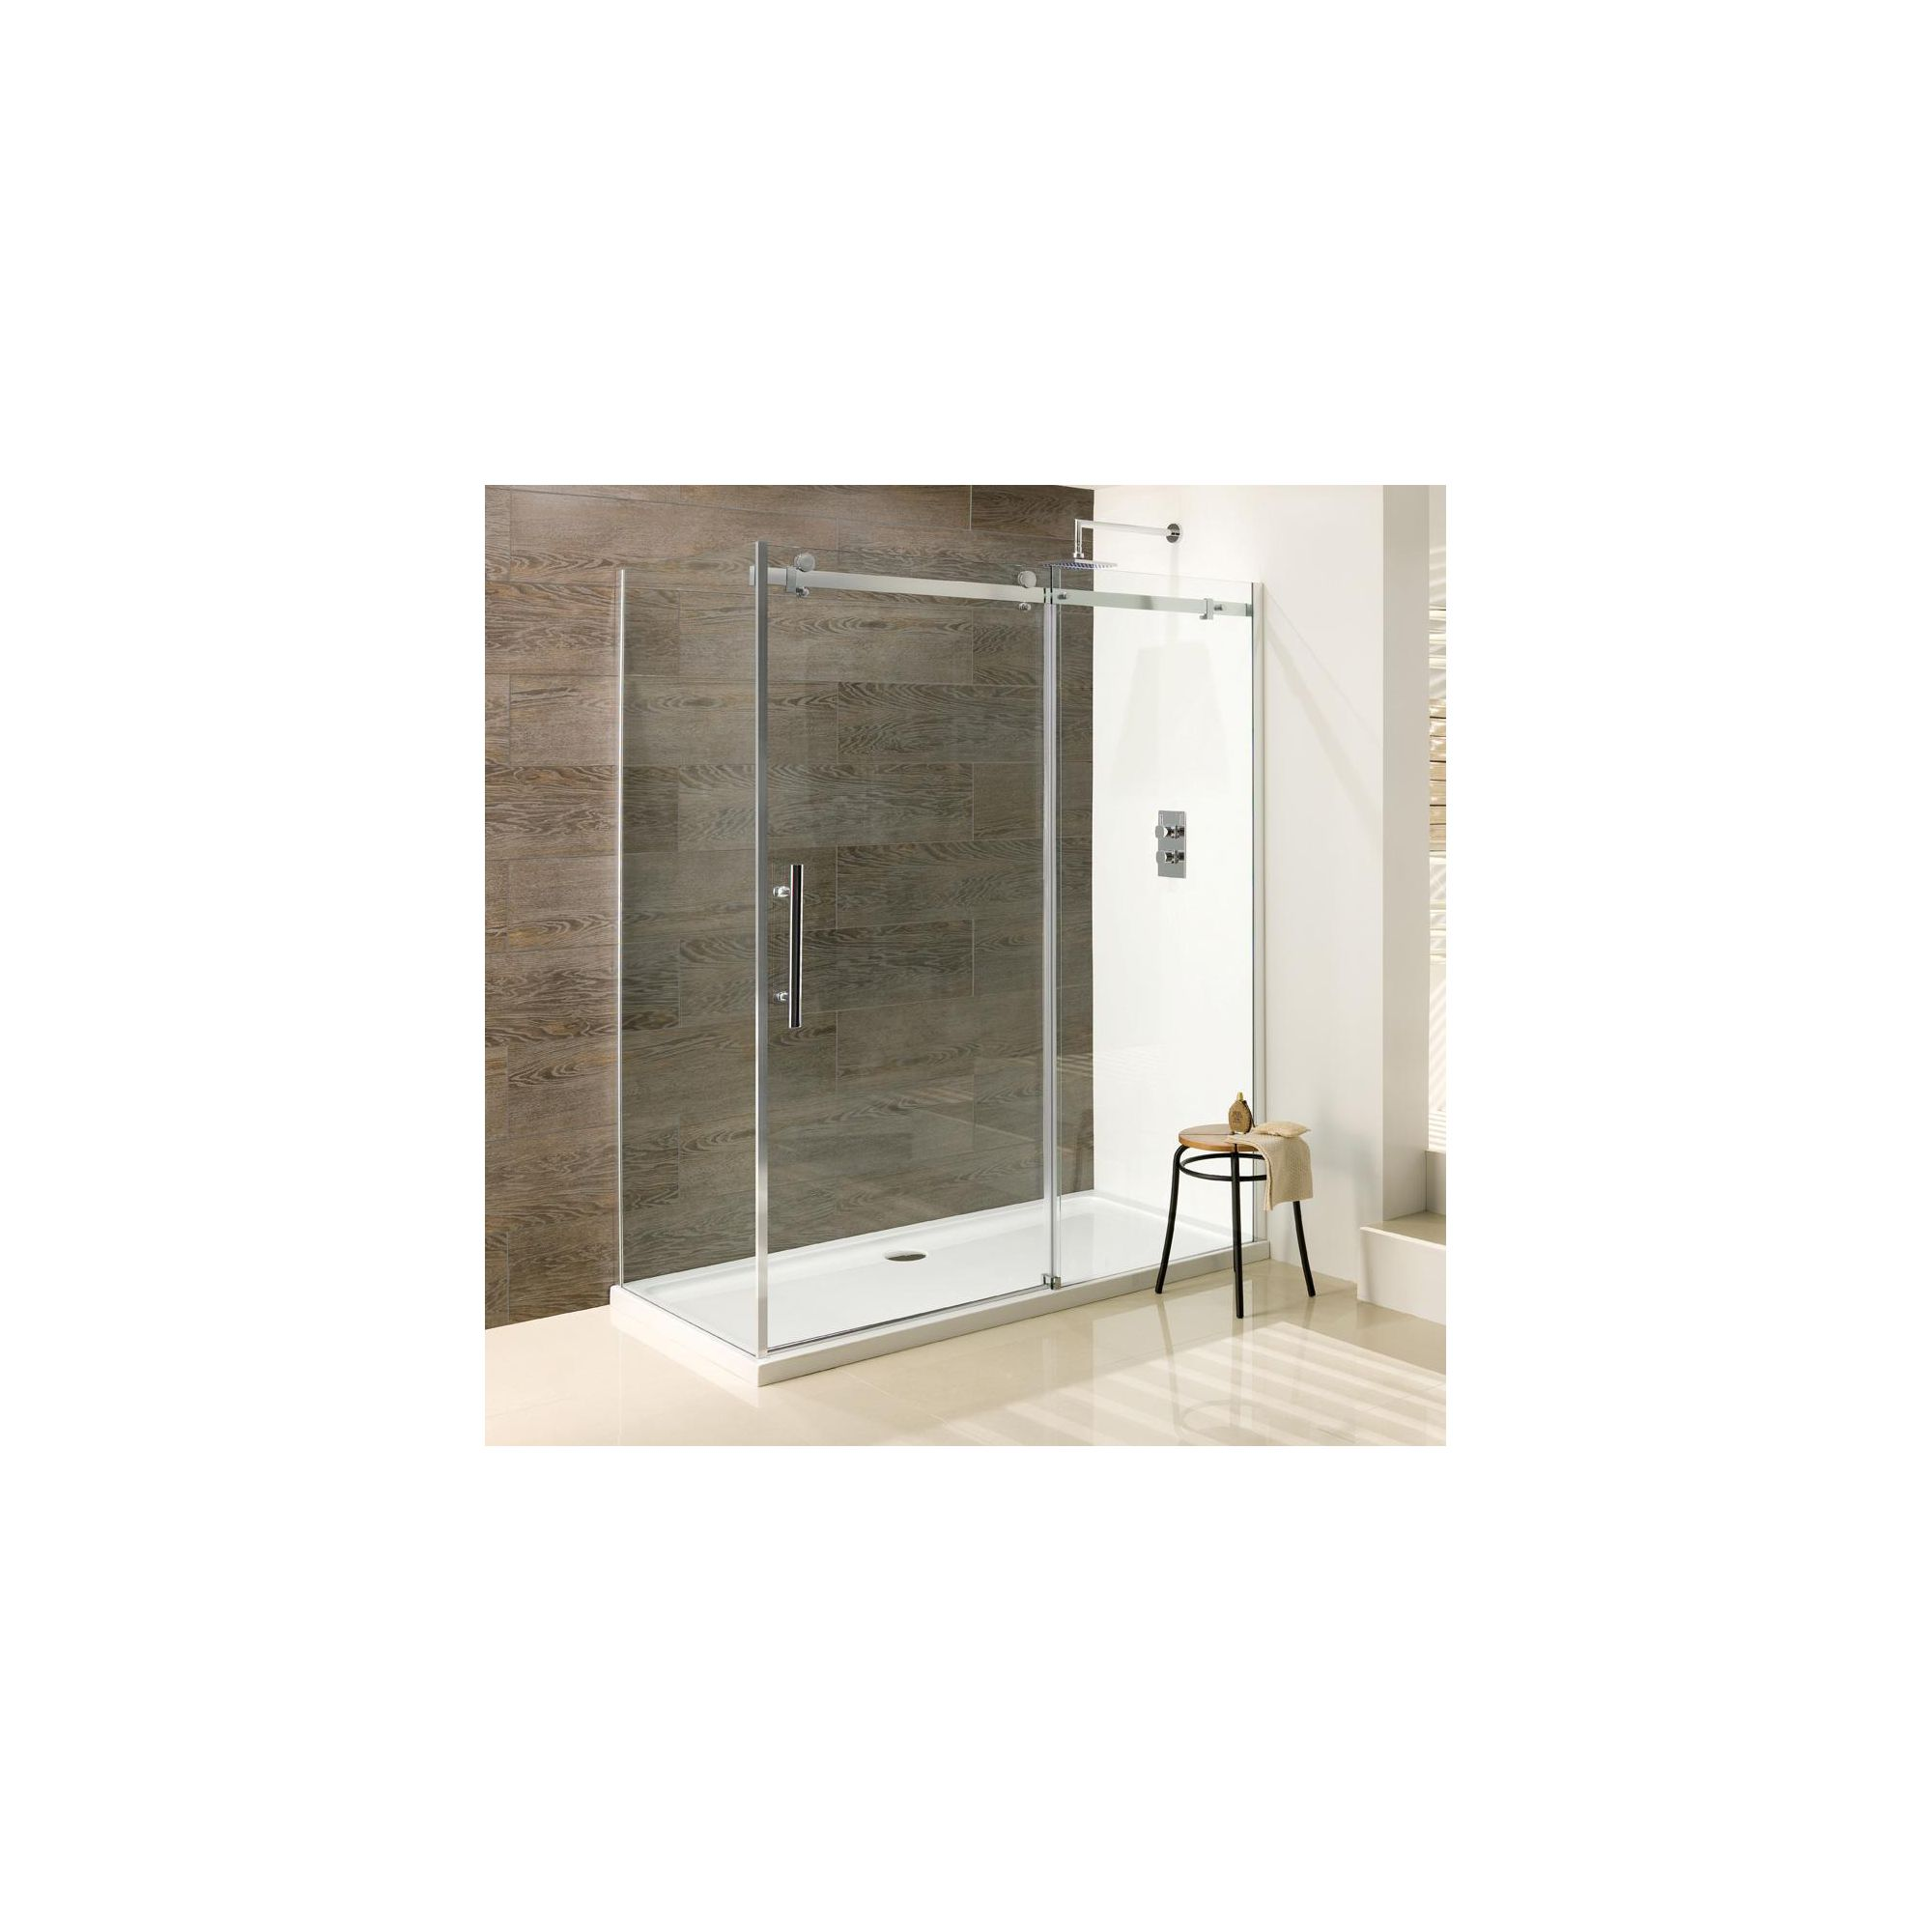 Duchy Deluxe Silver Sliding Door Shower Enclosure with Side Panel 1600mm x 800mm (Complete with Tray), 10mm Glass at Tesco Direct